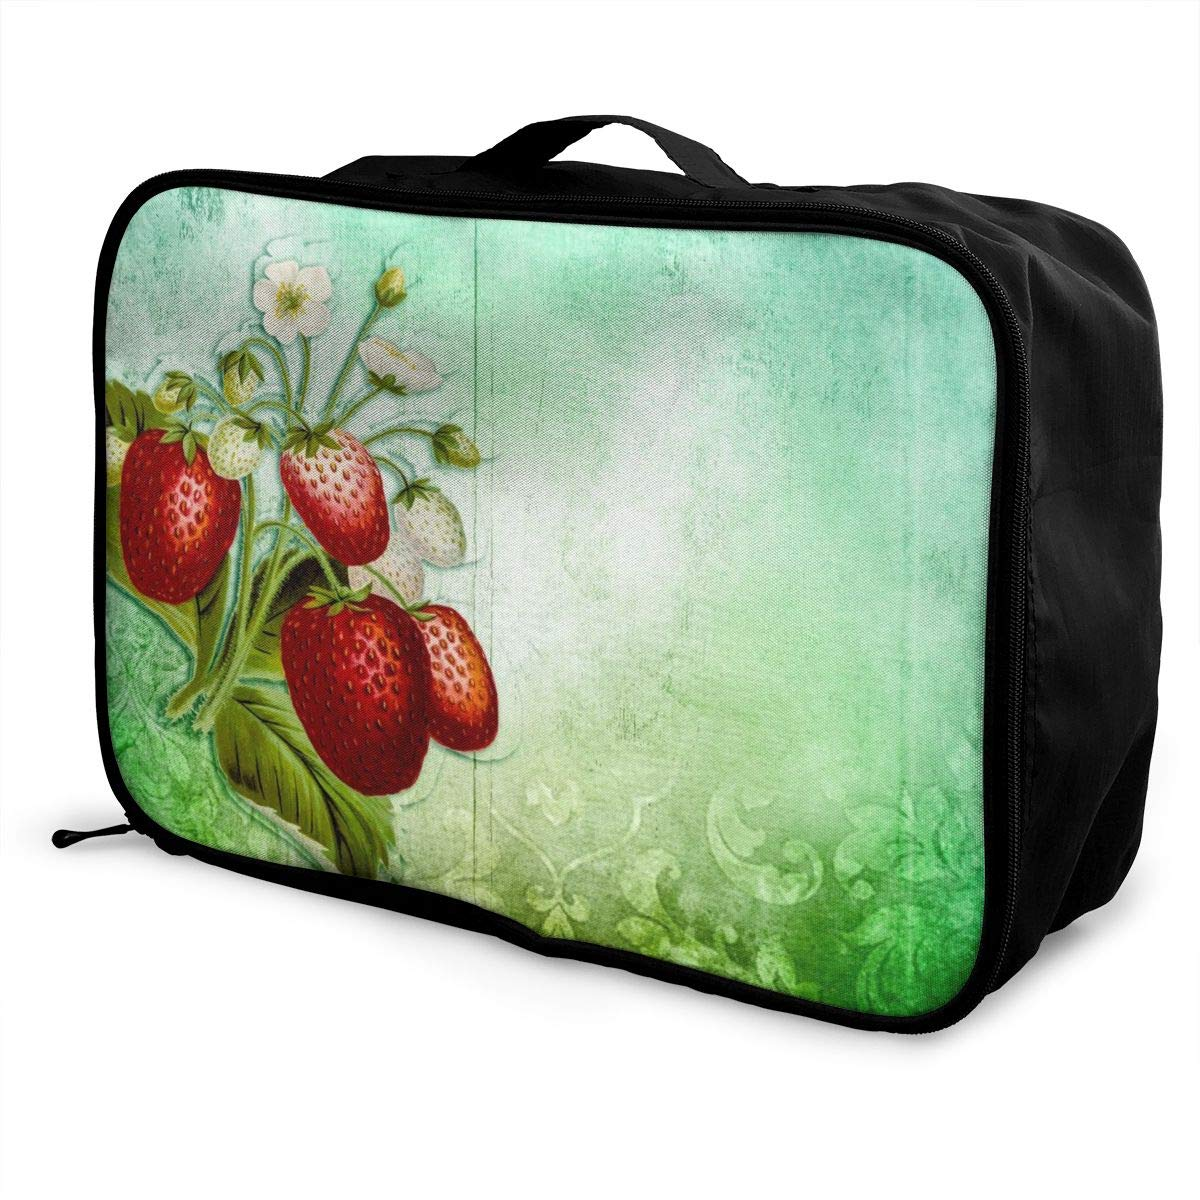 Decorate Retro Texture Flower Strawberry Travel Lightweight Waterproof Foldable Storage Carry Luggage Large Capacity Portable Luggage Bag Duffel Bag